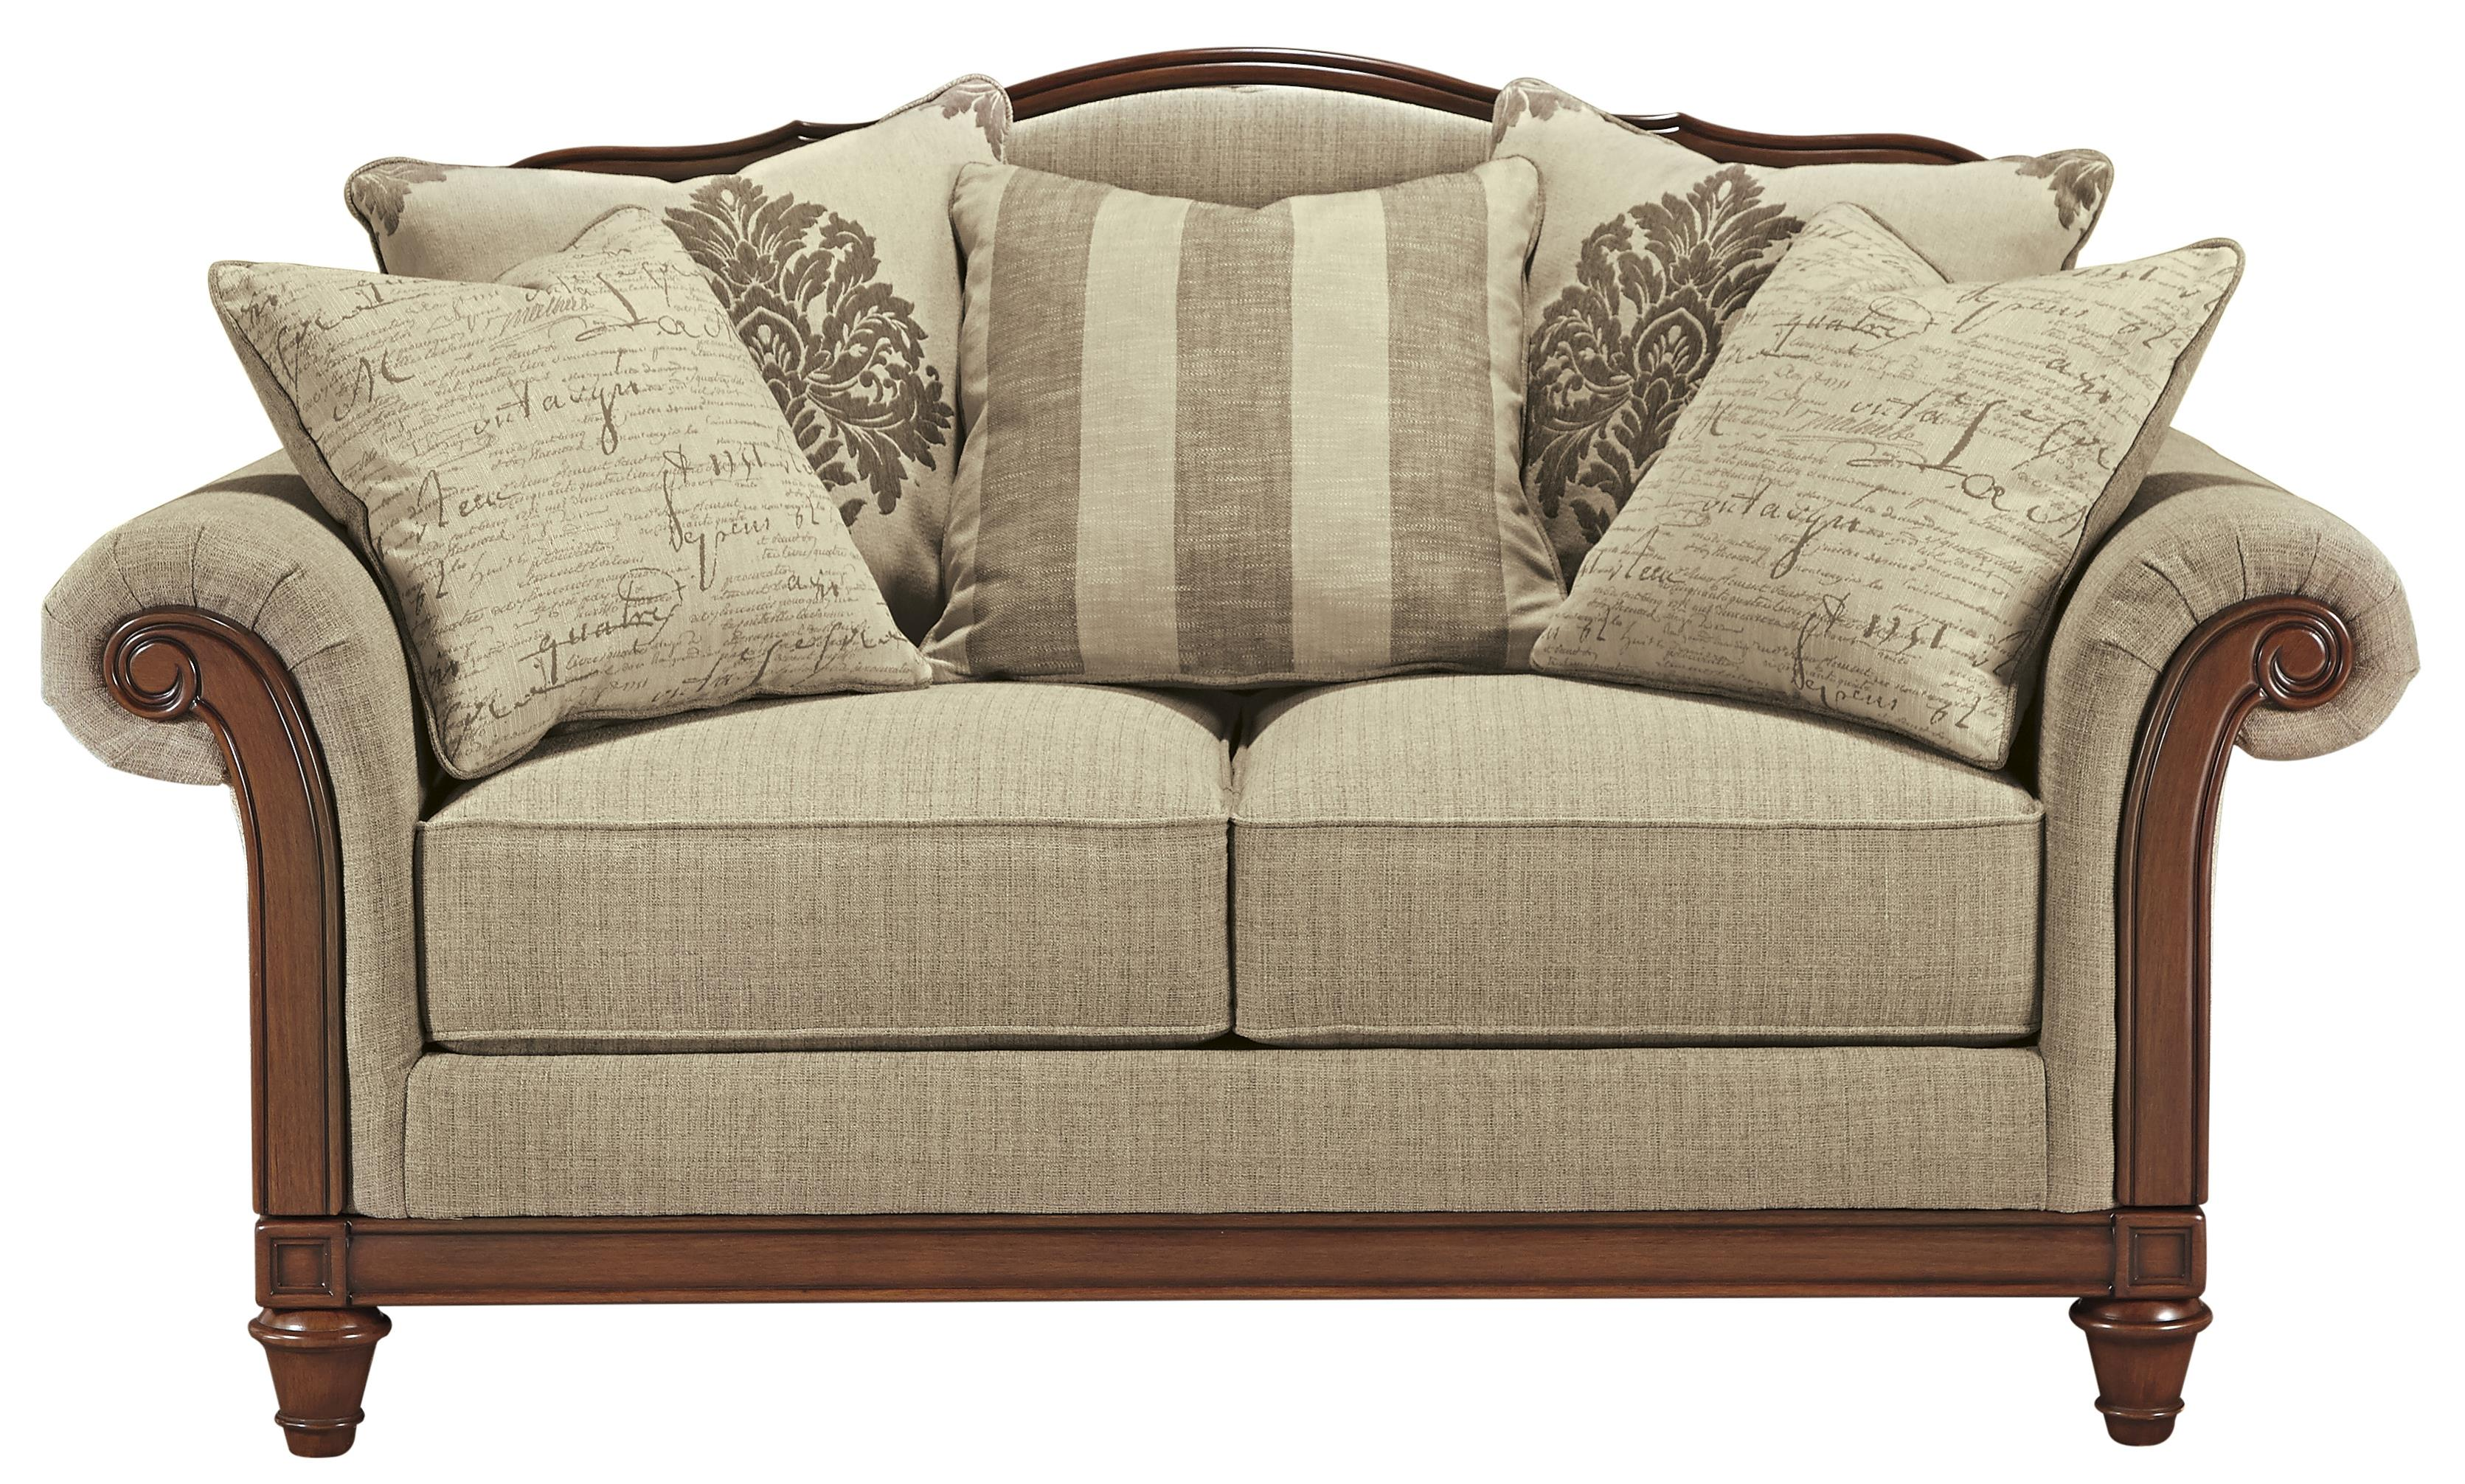 Signature Design by Ashley Berwyn View Loveseat - Item Number: 8980335